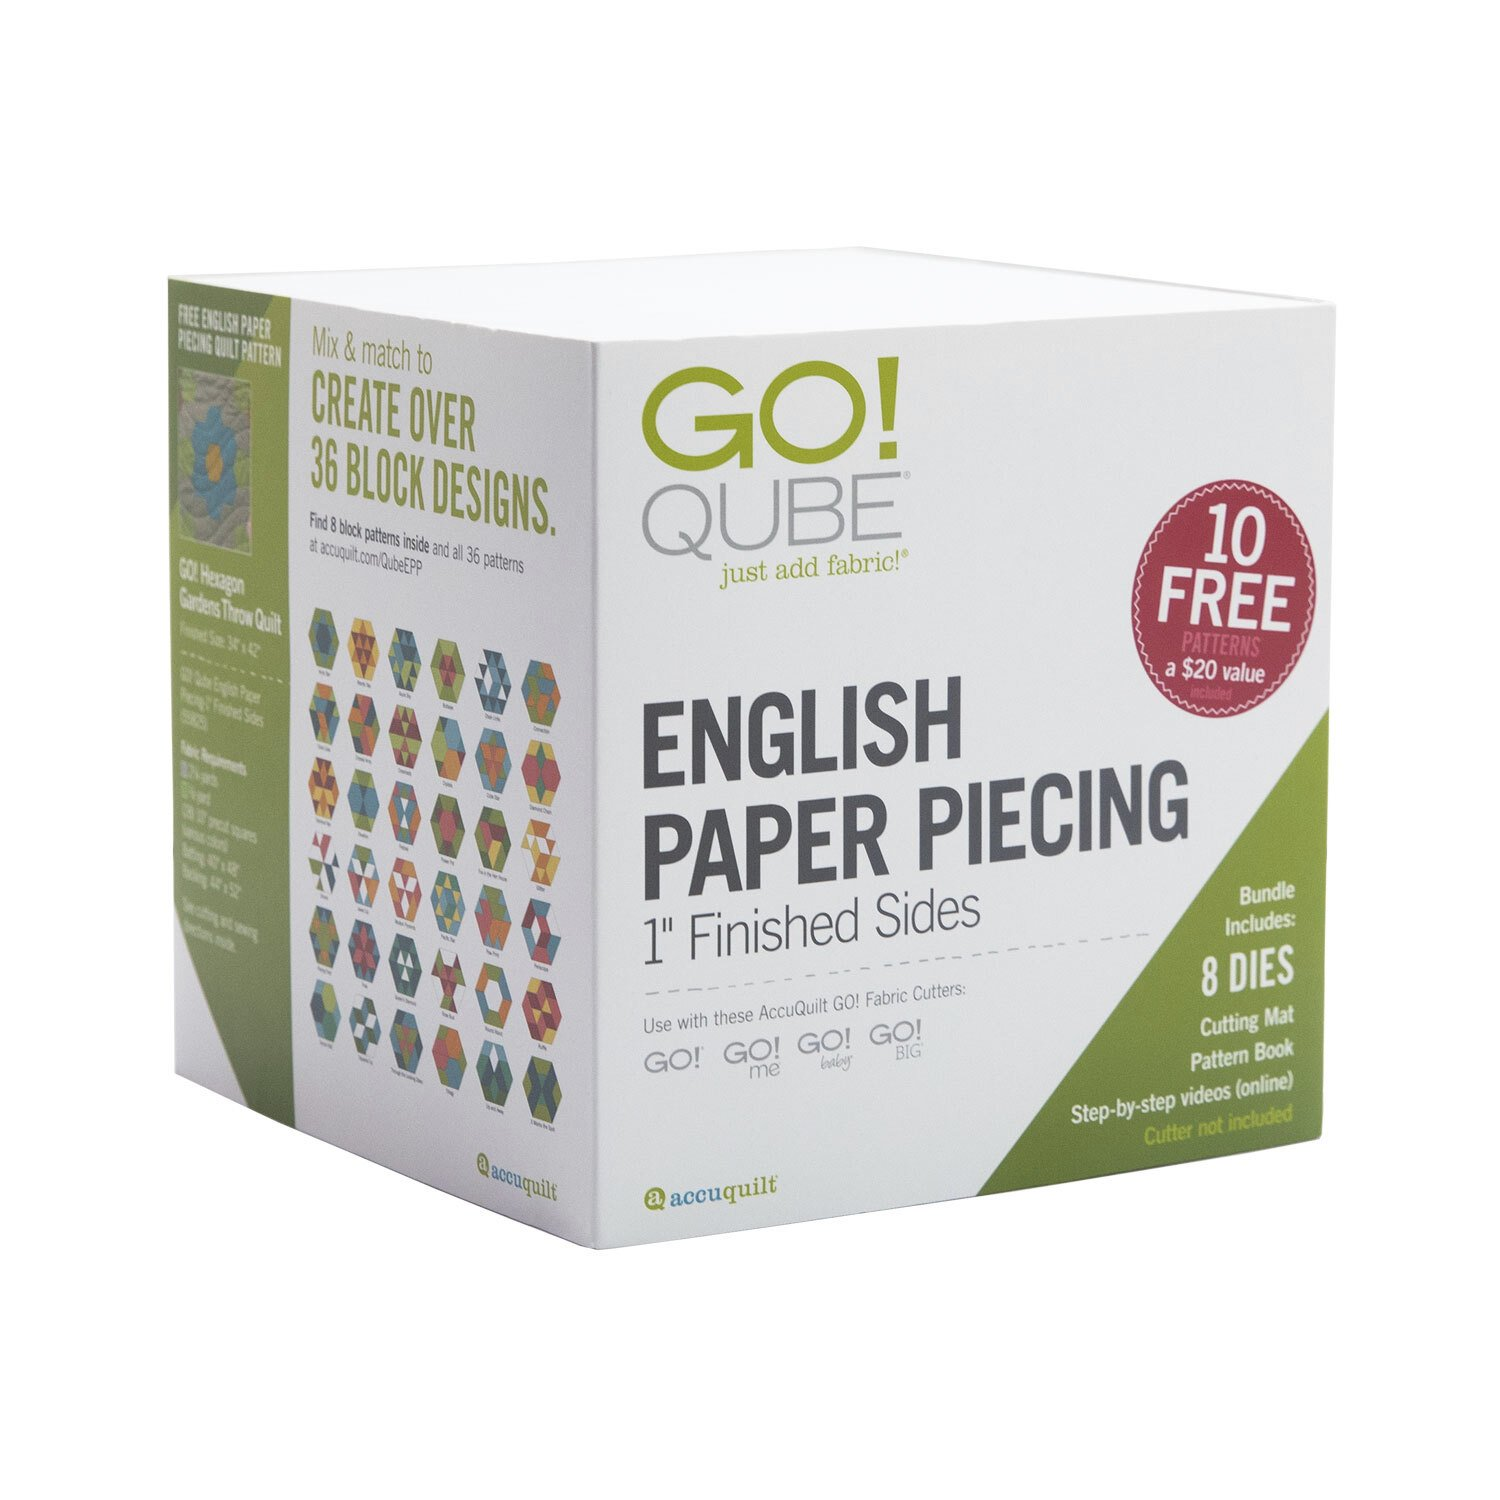 GO! Qube English Paper Piecing 1 Finished